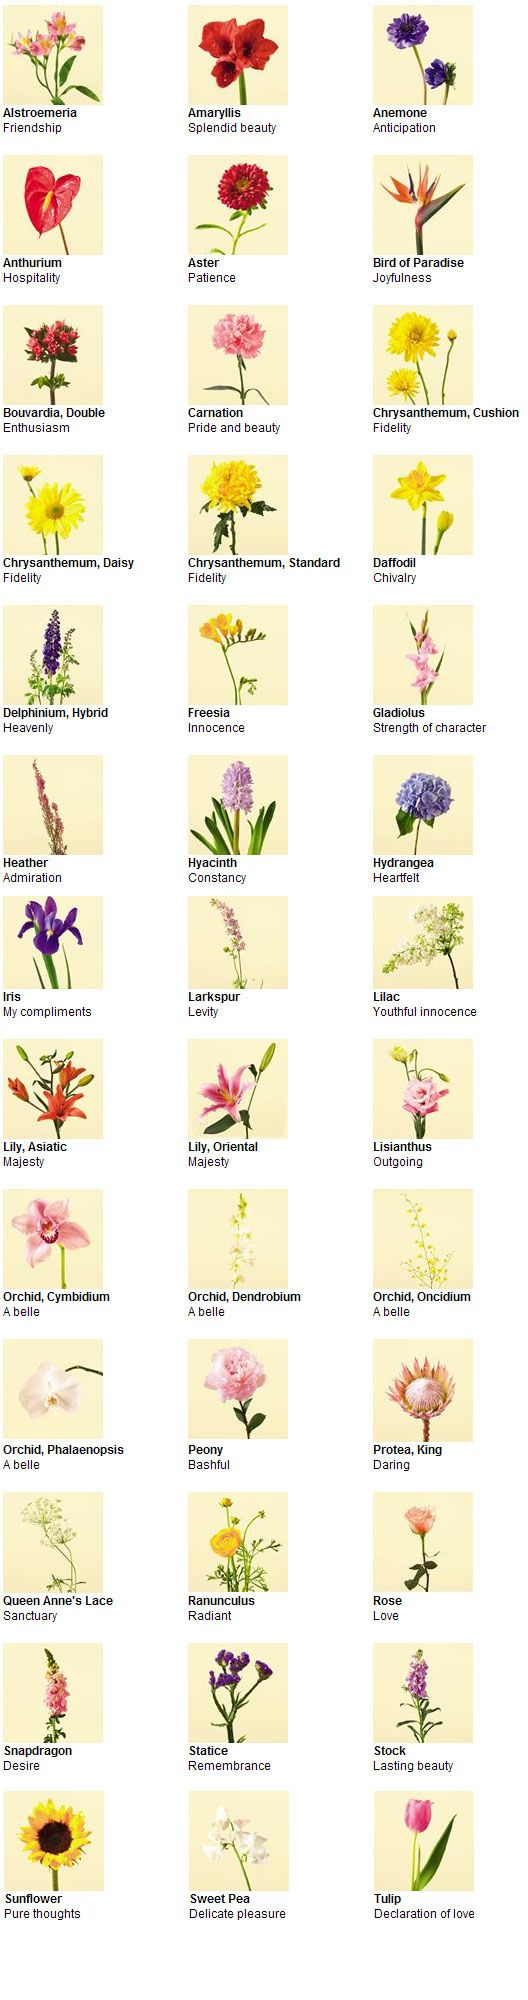 17 Best ideas about Types Of Flowers on Pinterest | Names of ...